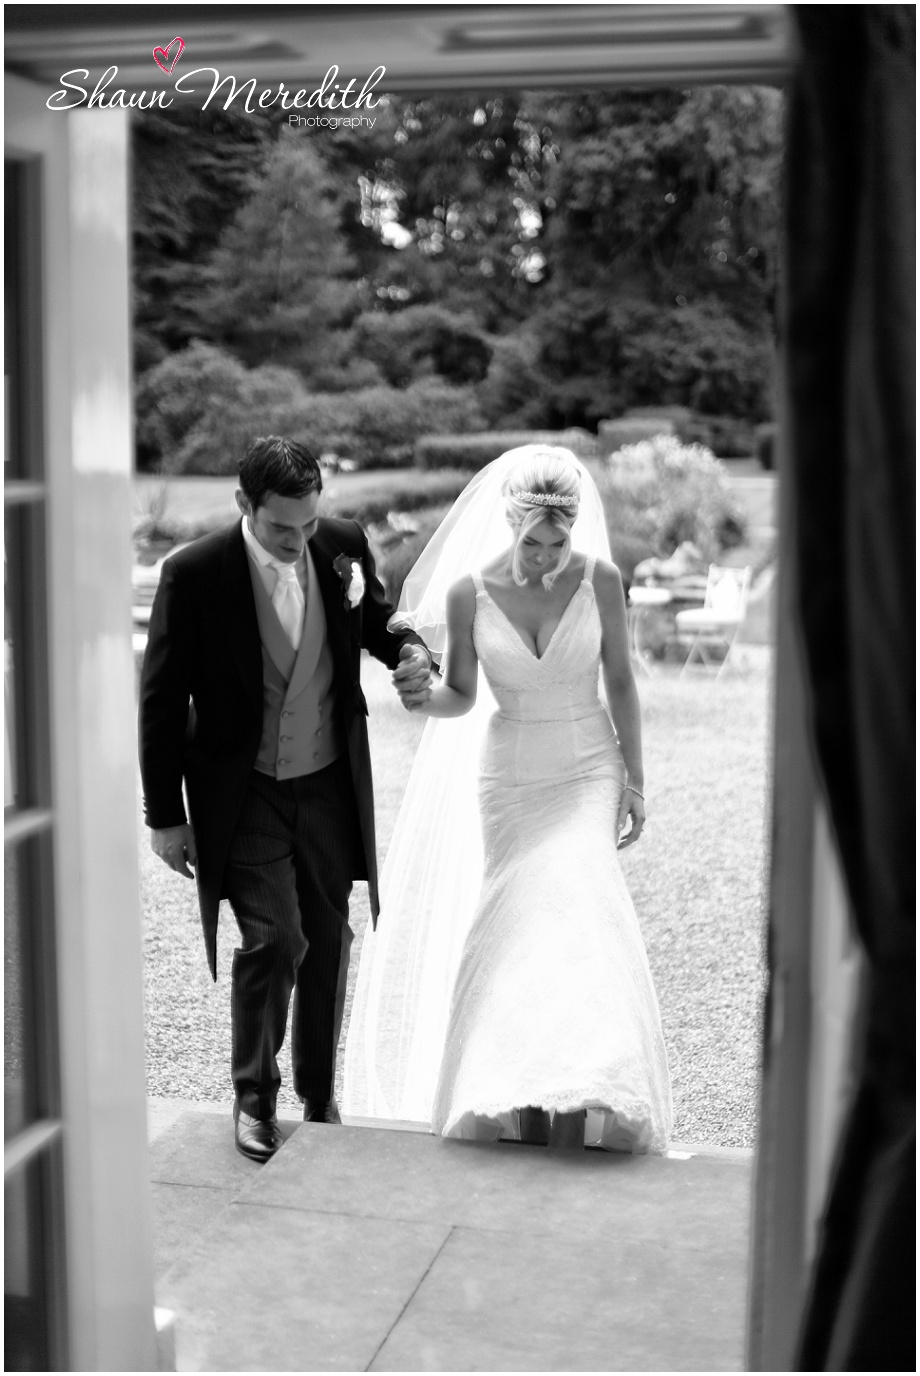 Lesley Meredith Photography (56)